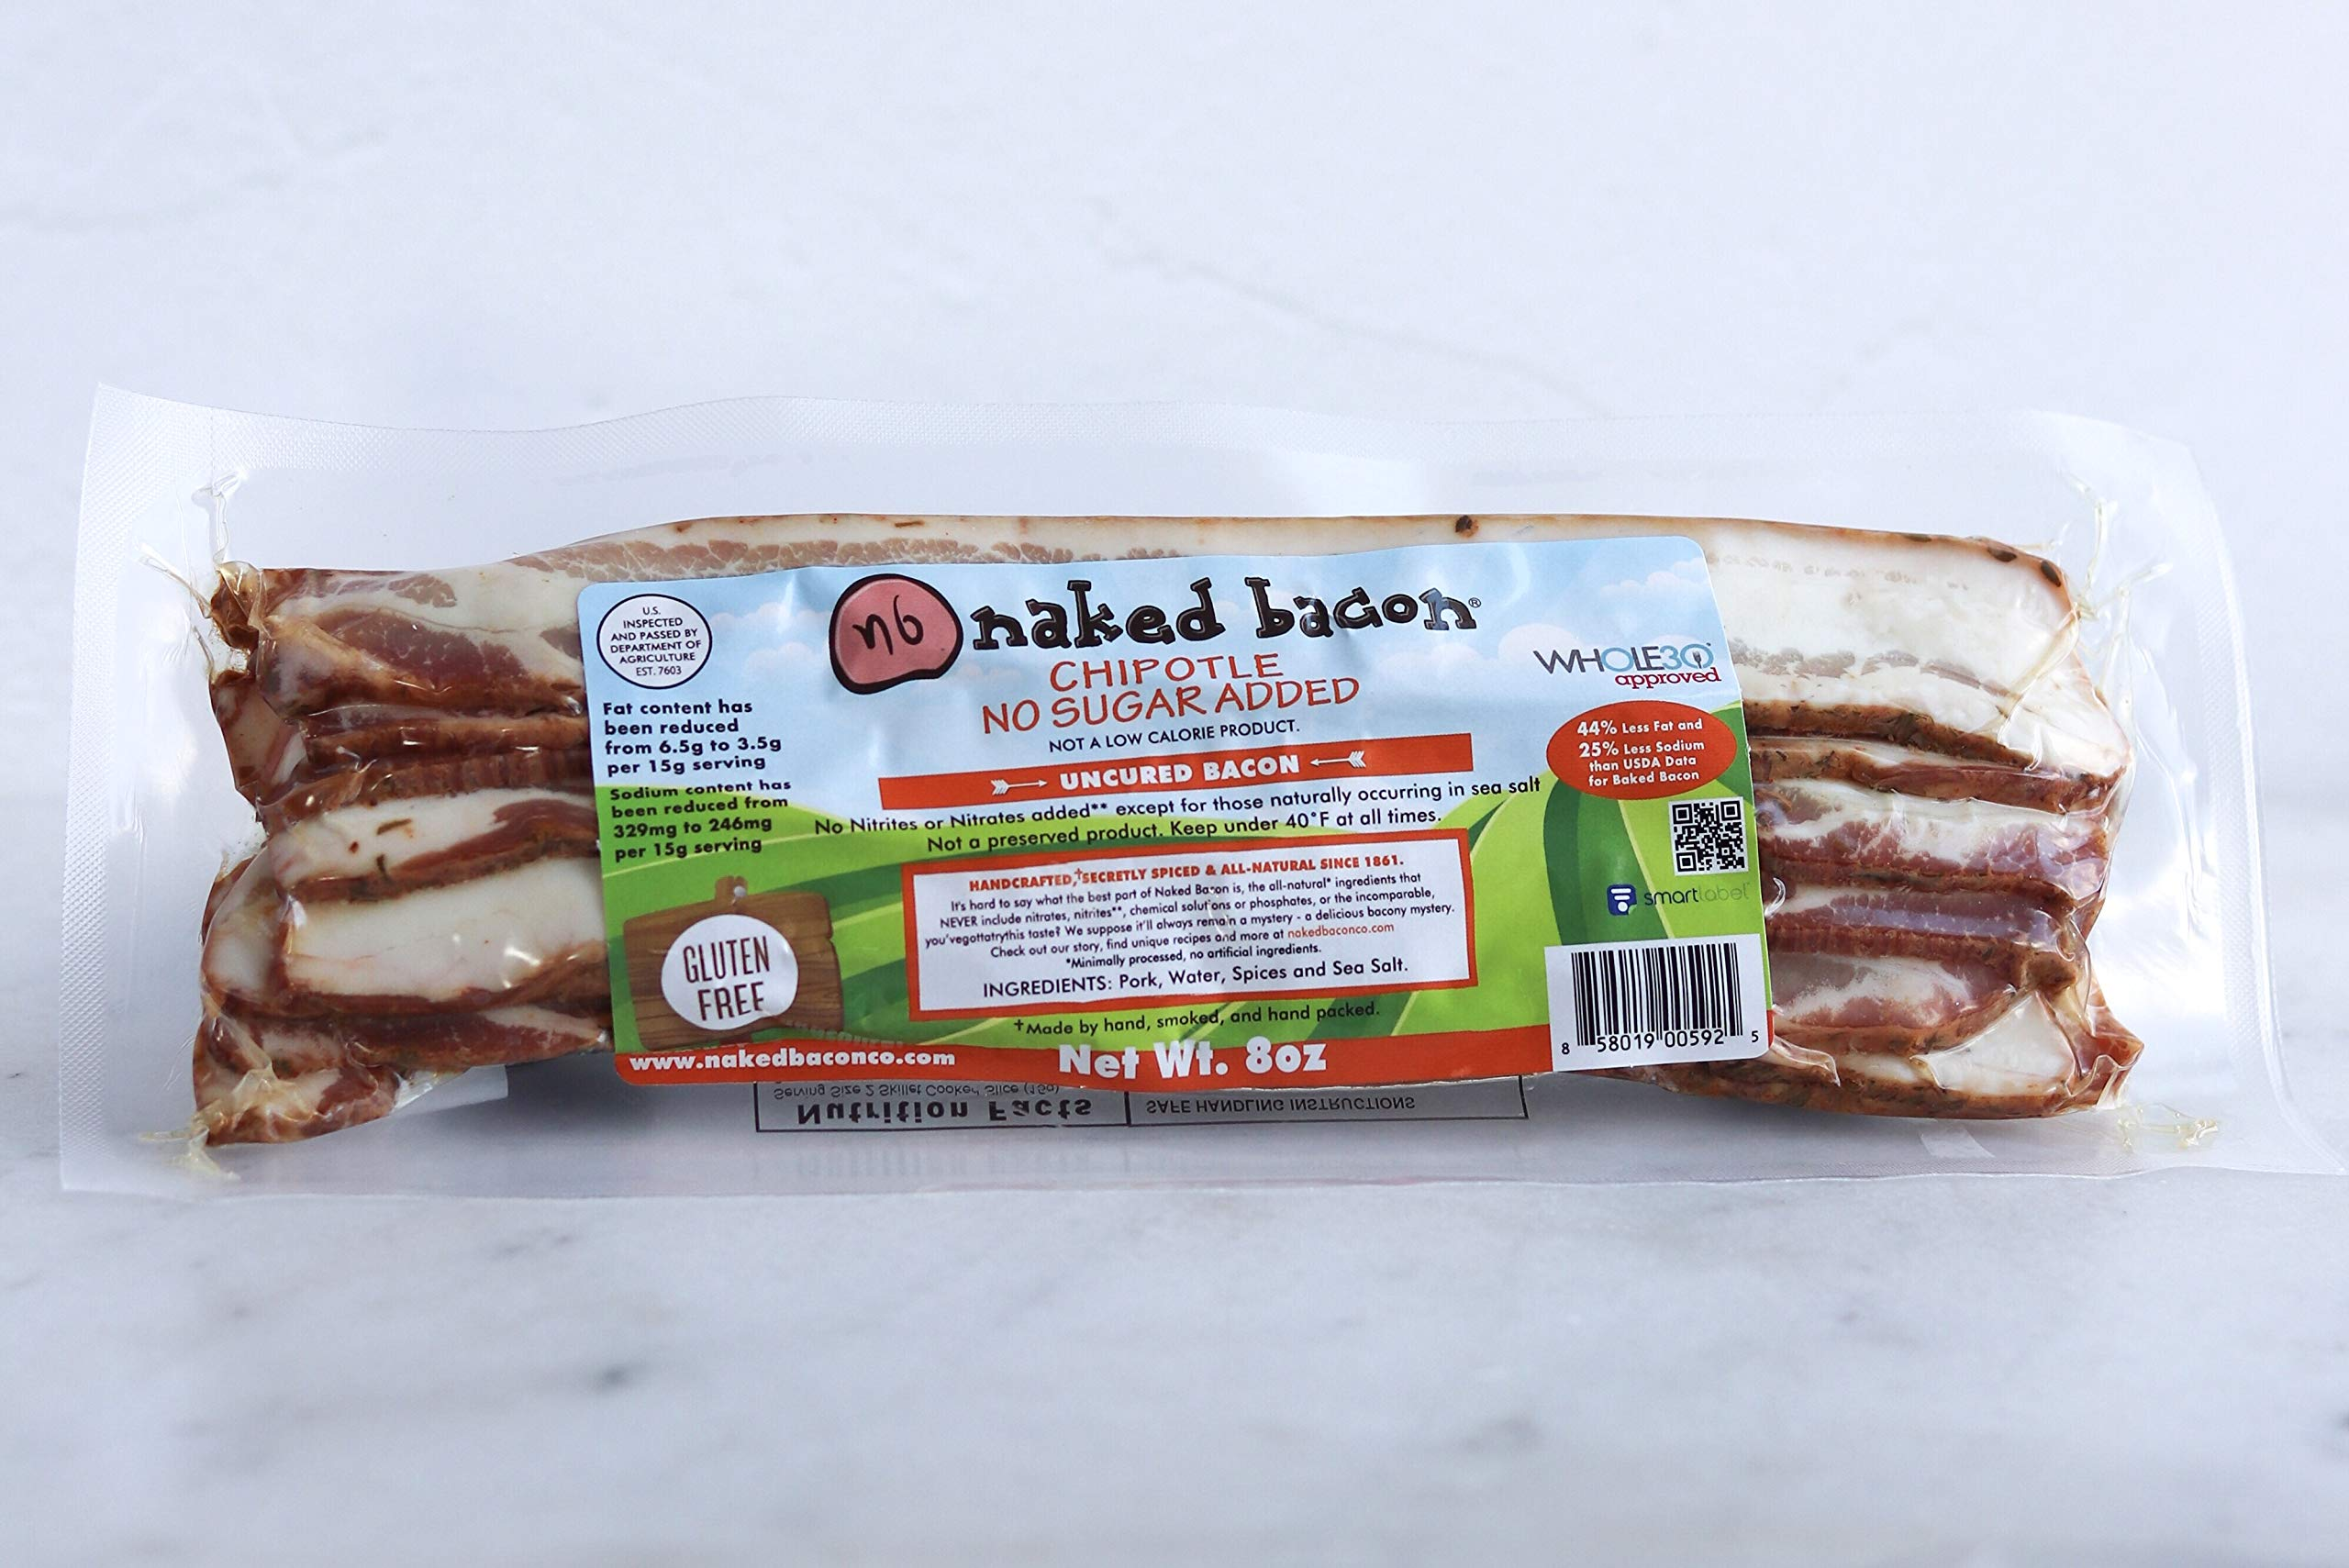 Chipotle Sugar Free Naked Bacon - Whole30 Approved Multipack (5 packages)